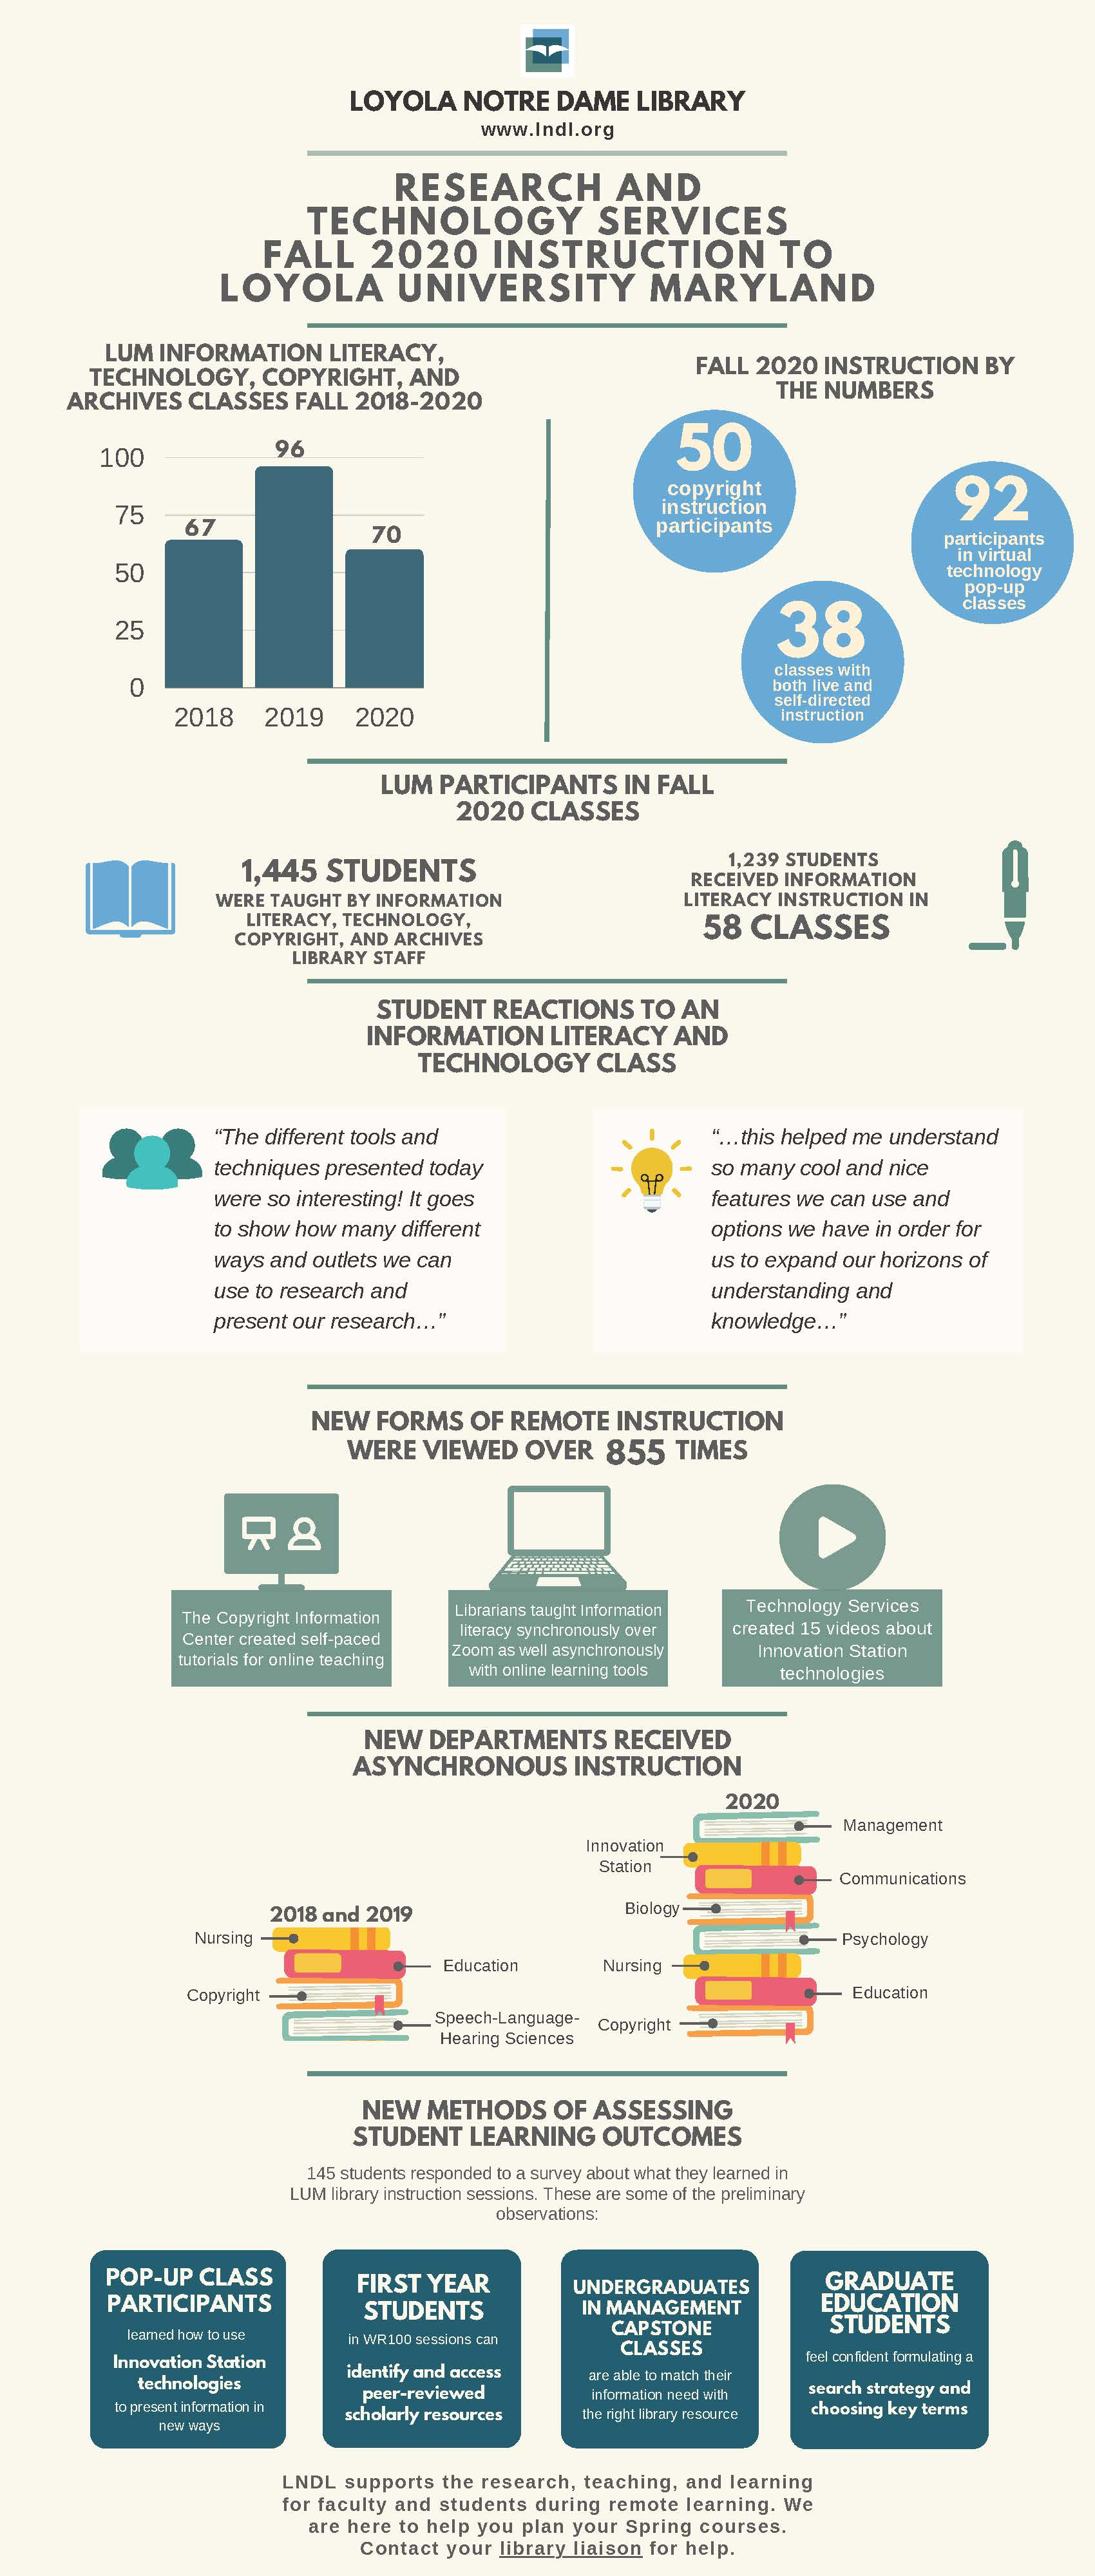 Research and Technology Services Fall 2020 Instruction to Loyola University Maryland Infographic